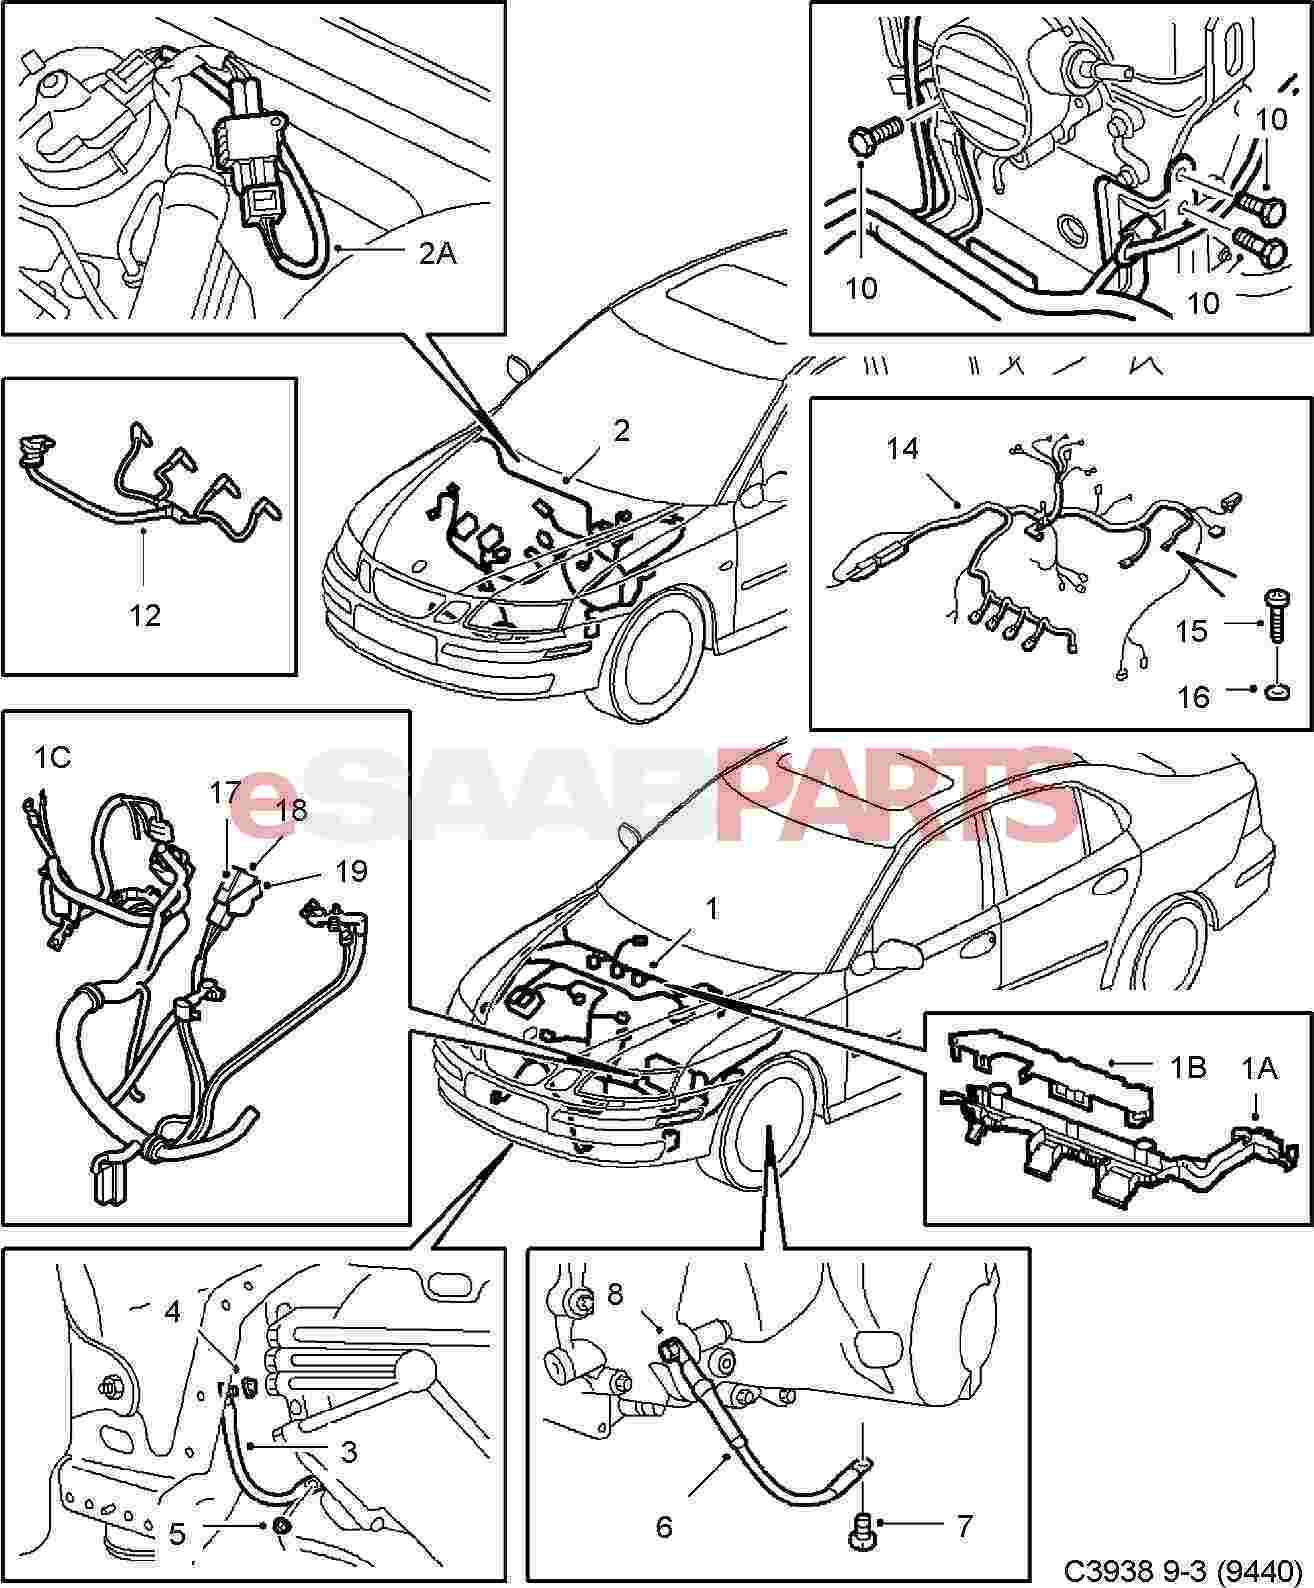 Saab 9 3 Engine Diagram Cpu Start Building A Wiring 2000 5 Schematic Esaabparts Com 9440 U003e Electrical Parts Harness Rh 2 Schematics For 99